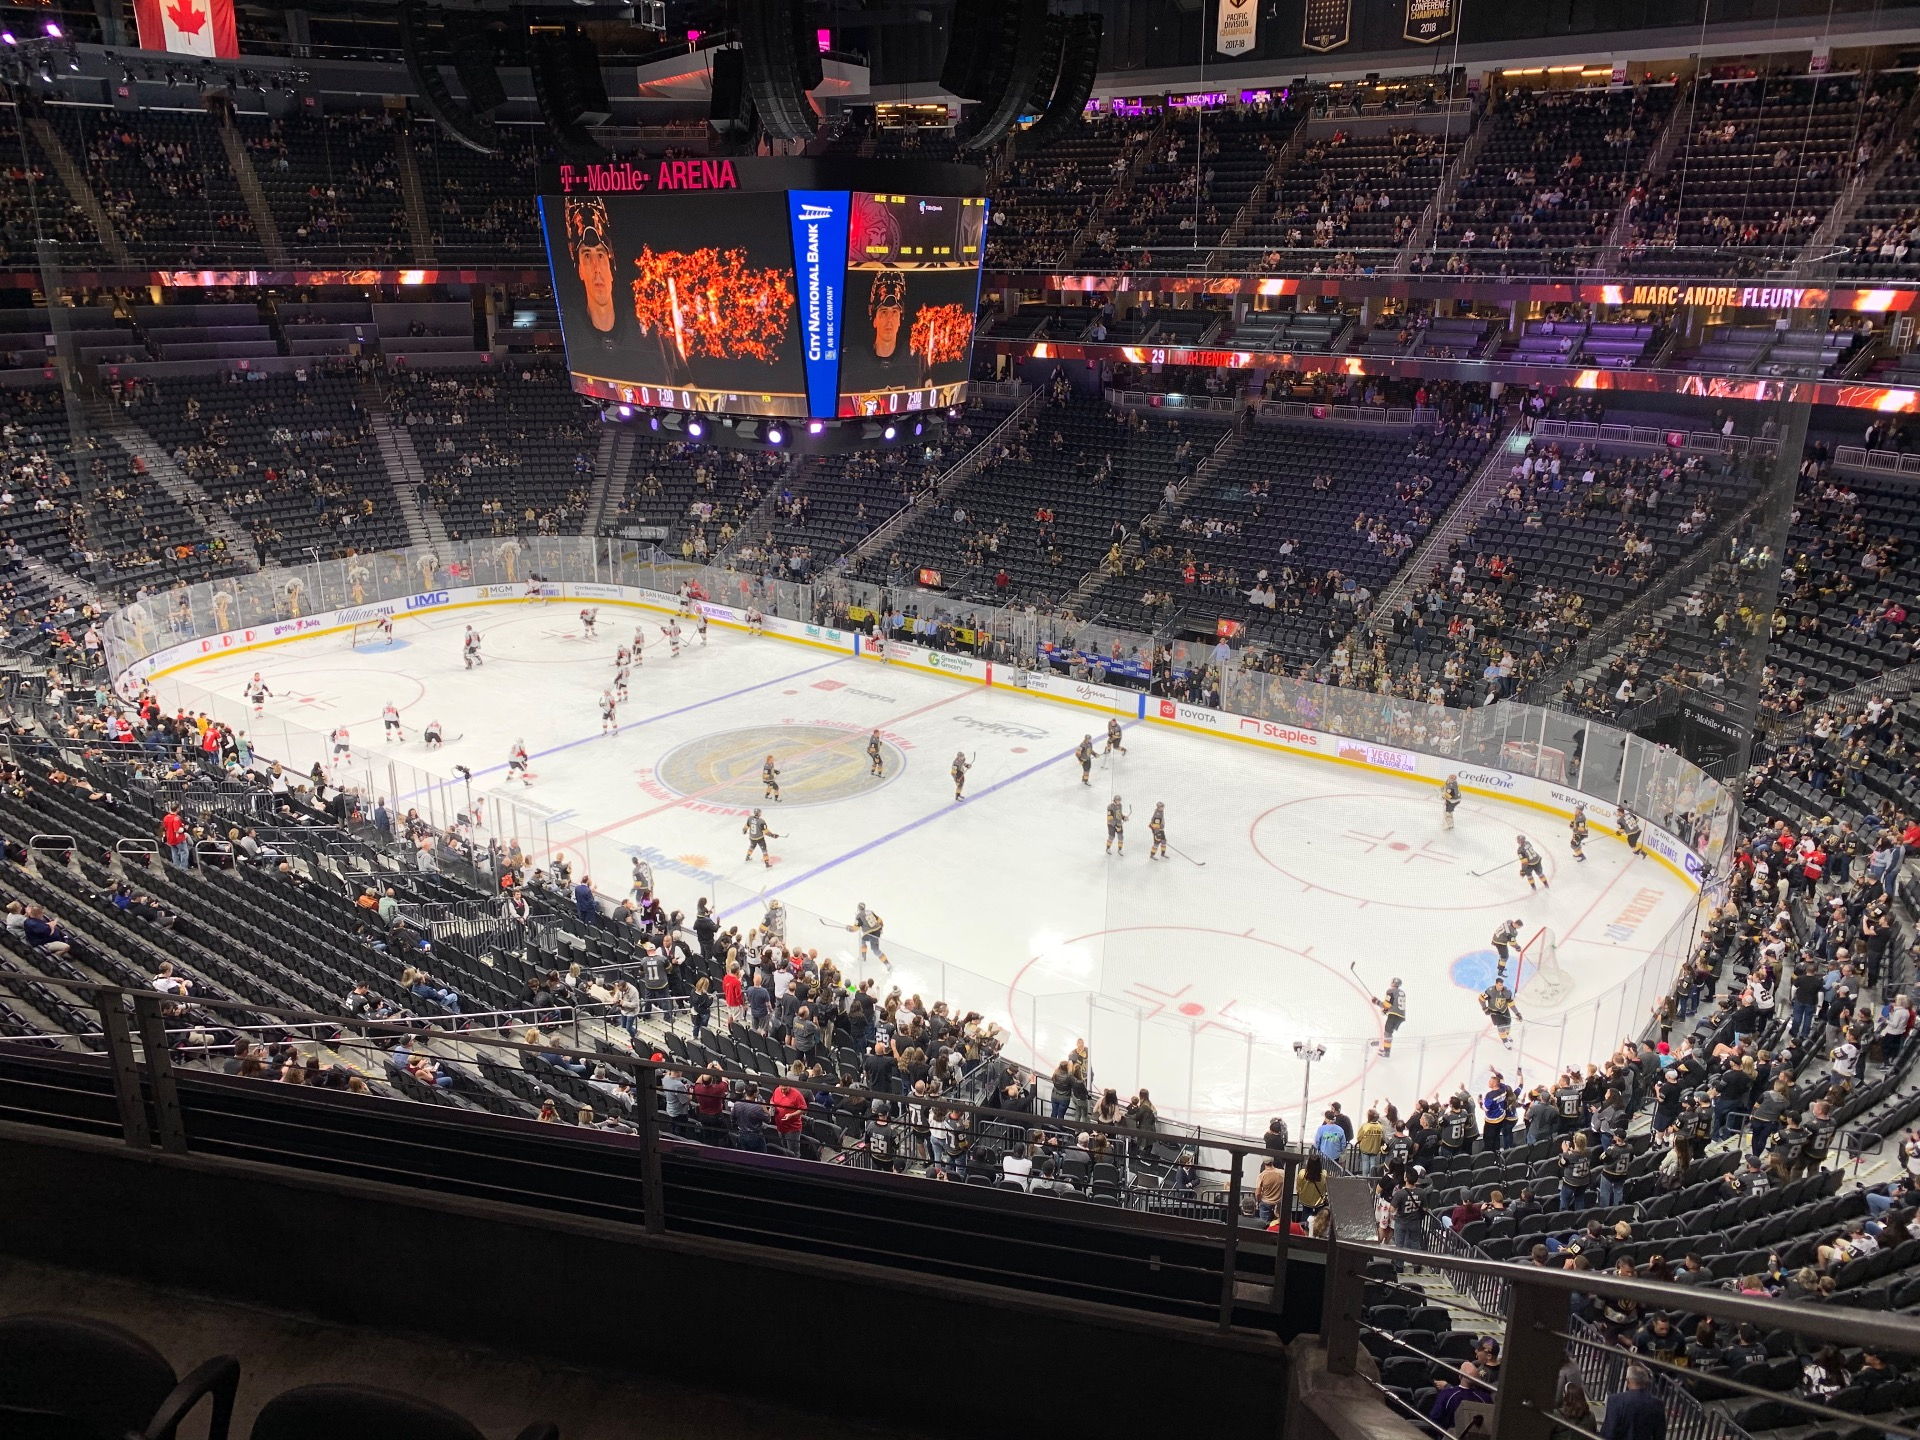 T-Mobile Arena Section 227 Row C Seat 8